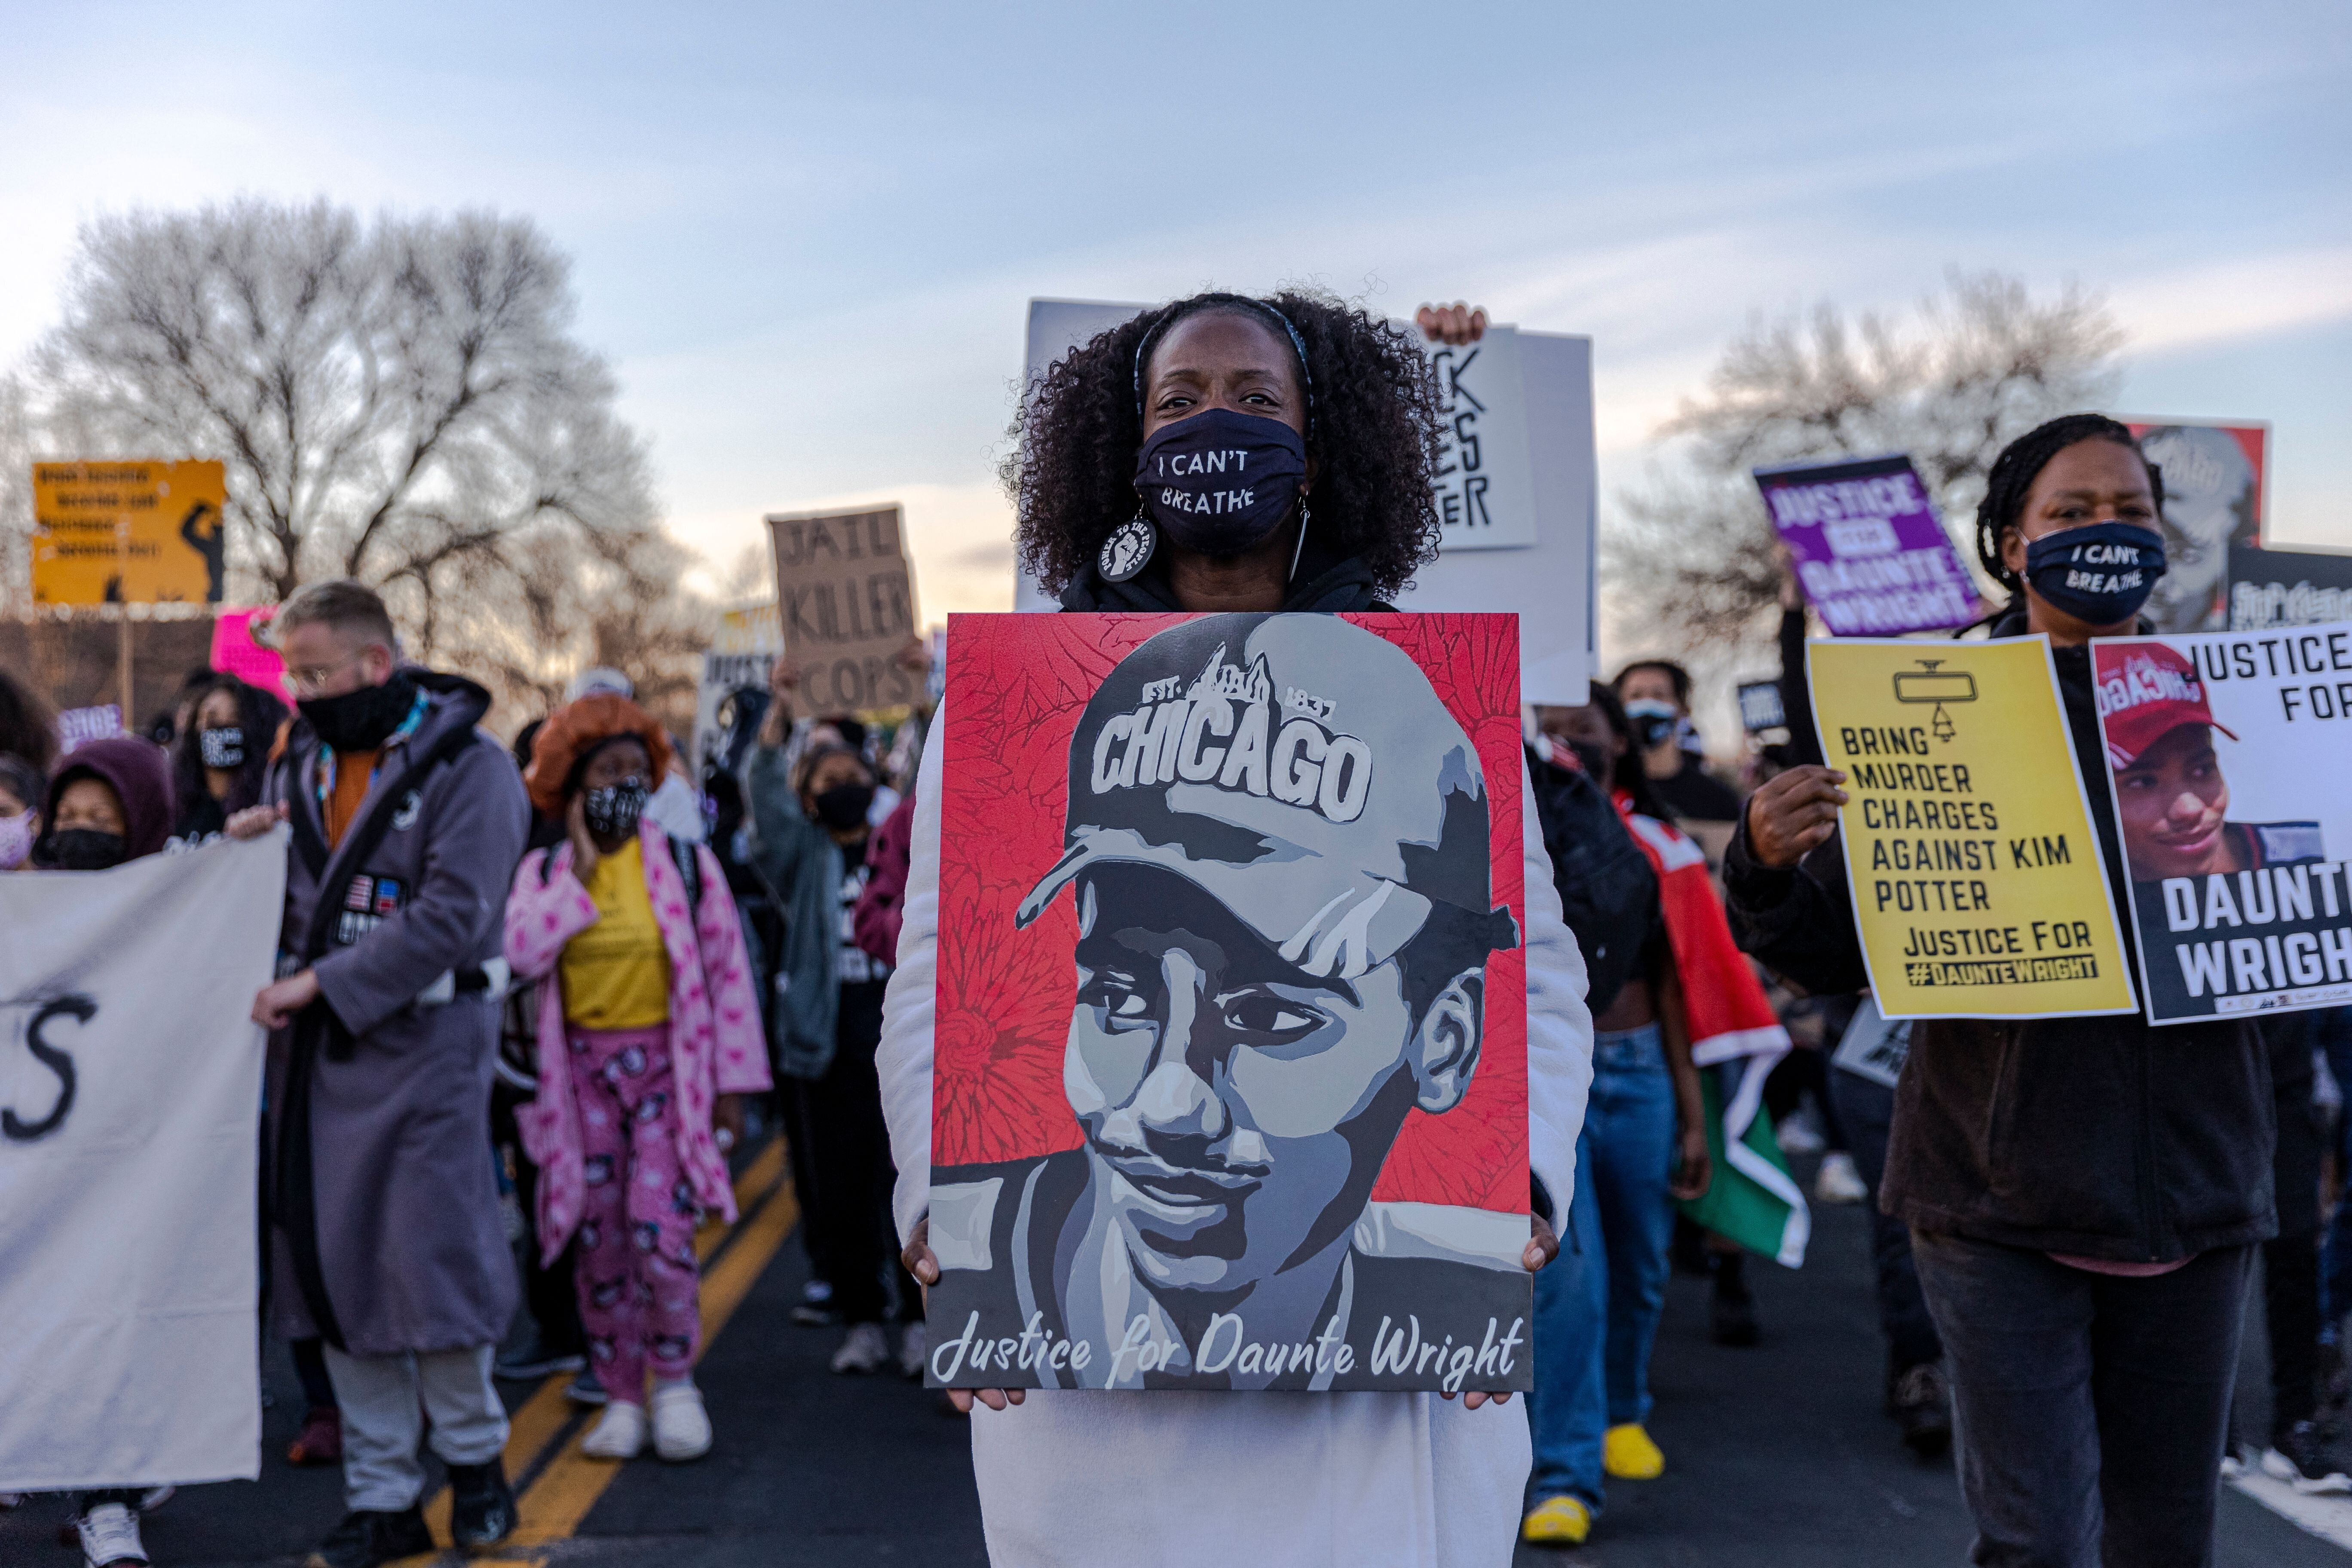 Demonstrators hold posters of Daunte Wright during a protest near the Brooklyn Center Police Department in Minnesota on April